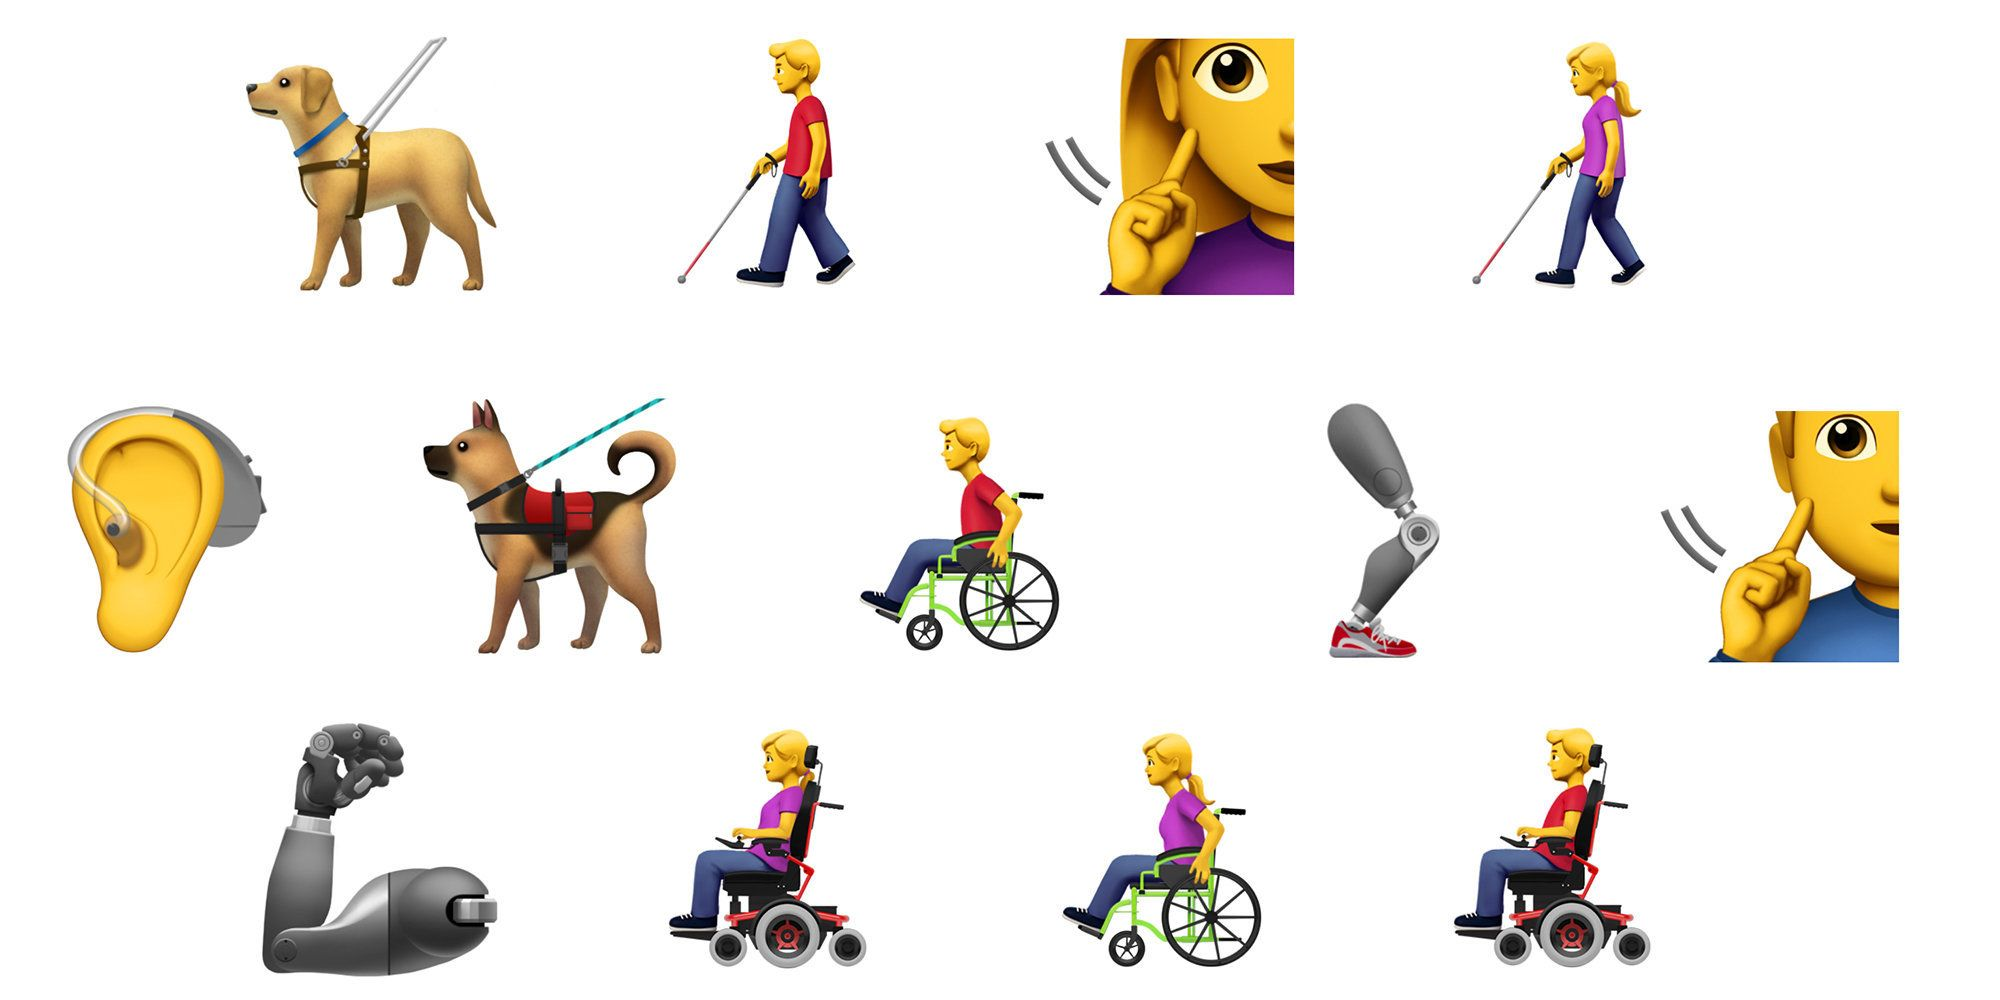 Apple recently proposed 13 new emojis representing various types of disability. The company worked with organizations&nb